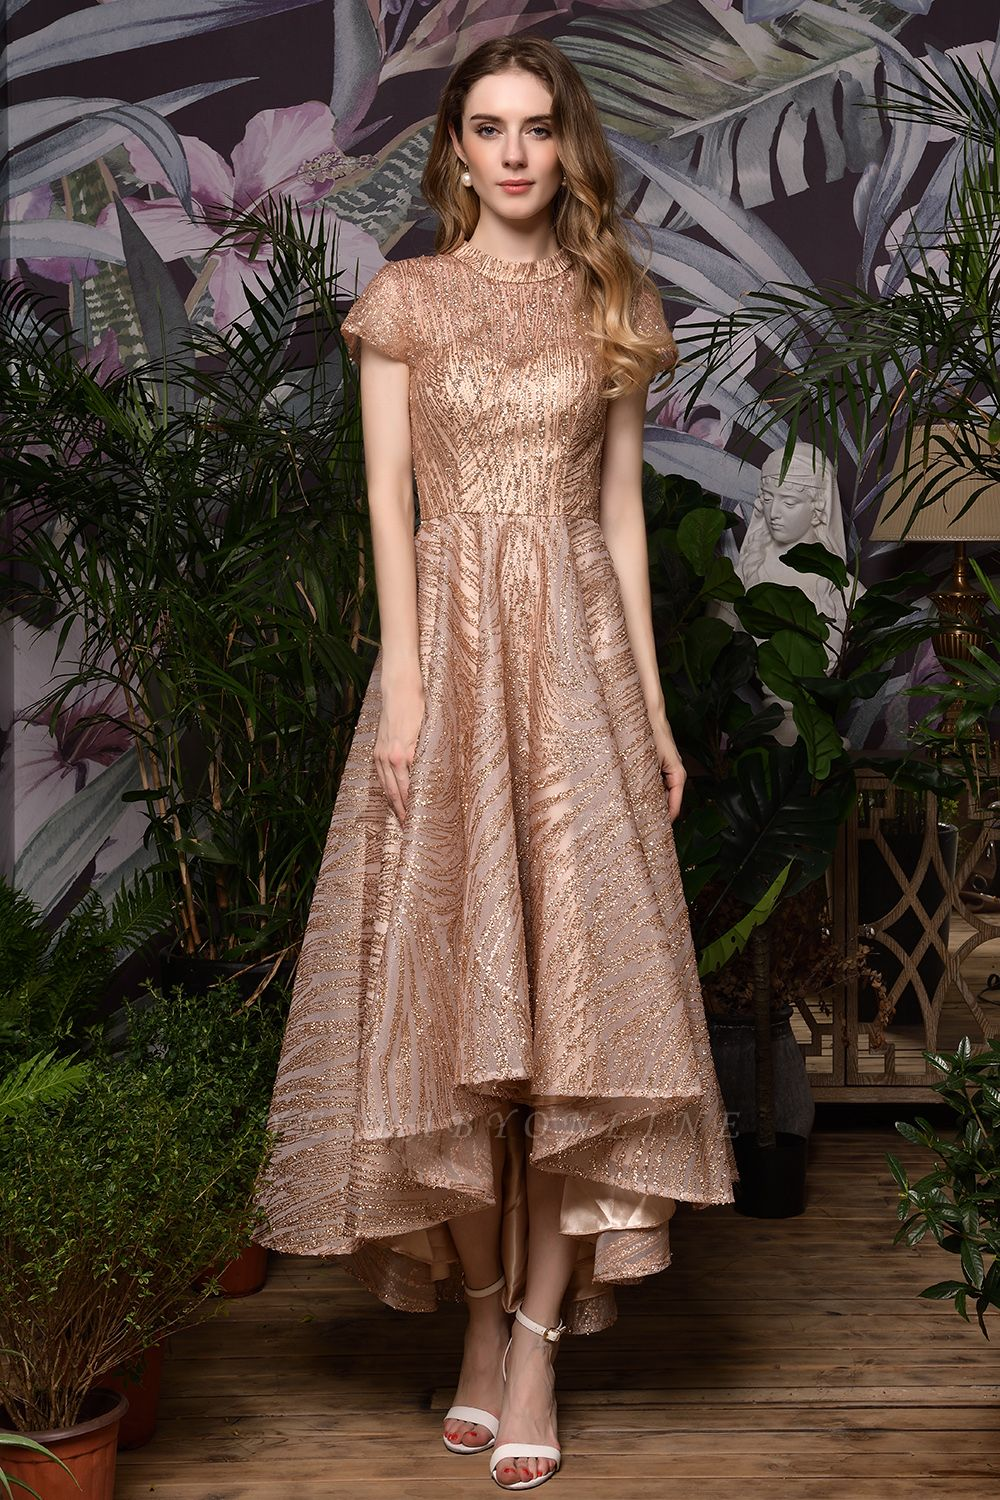 Champagne High Neck Short Sleeve Sequined A Line Prom Dress | Tea Length Ruffles Evening Gown